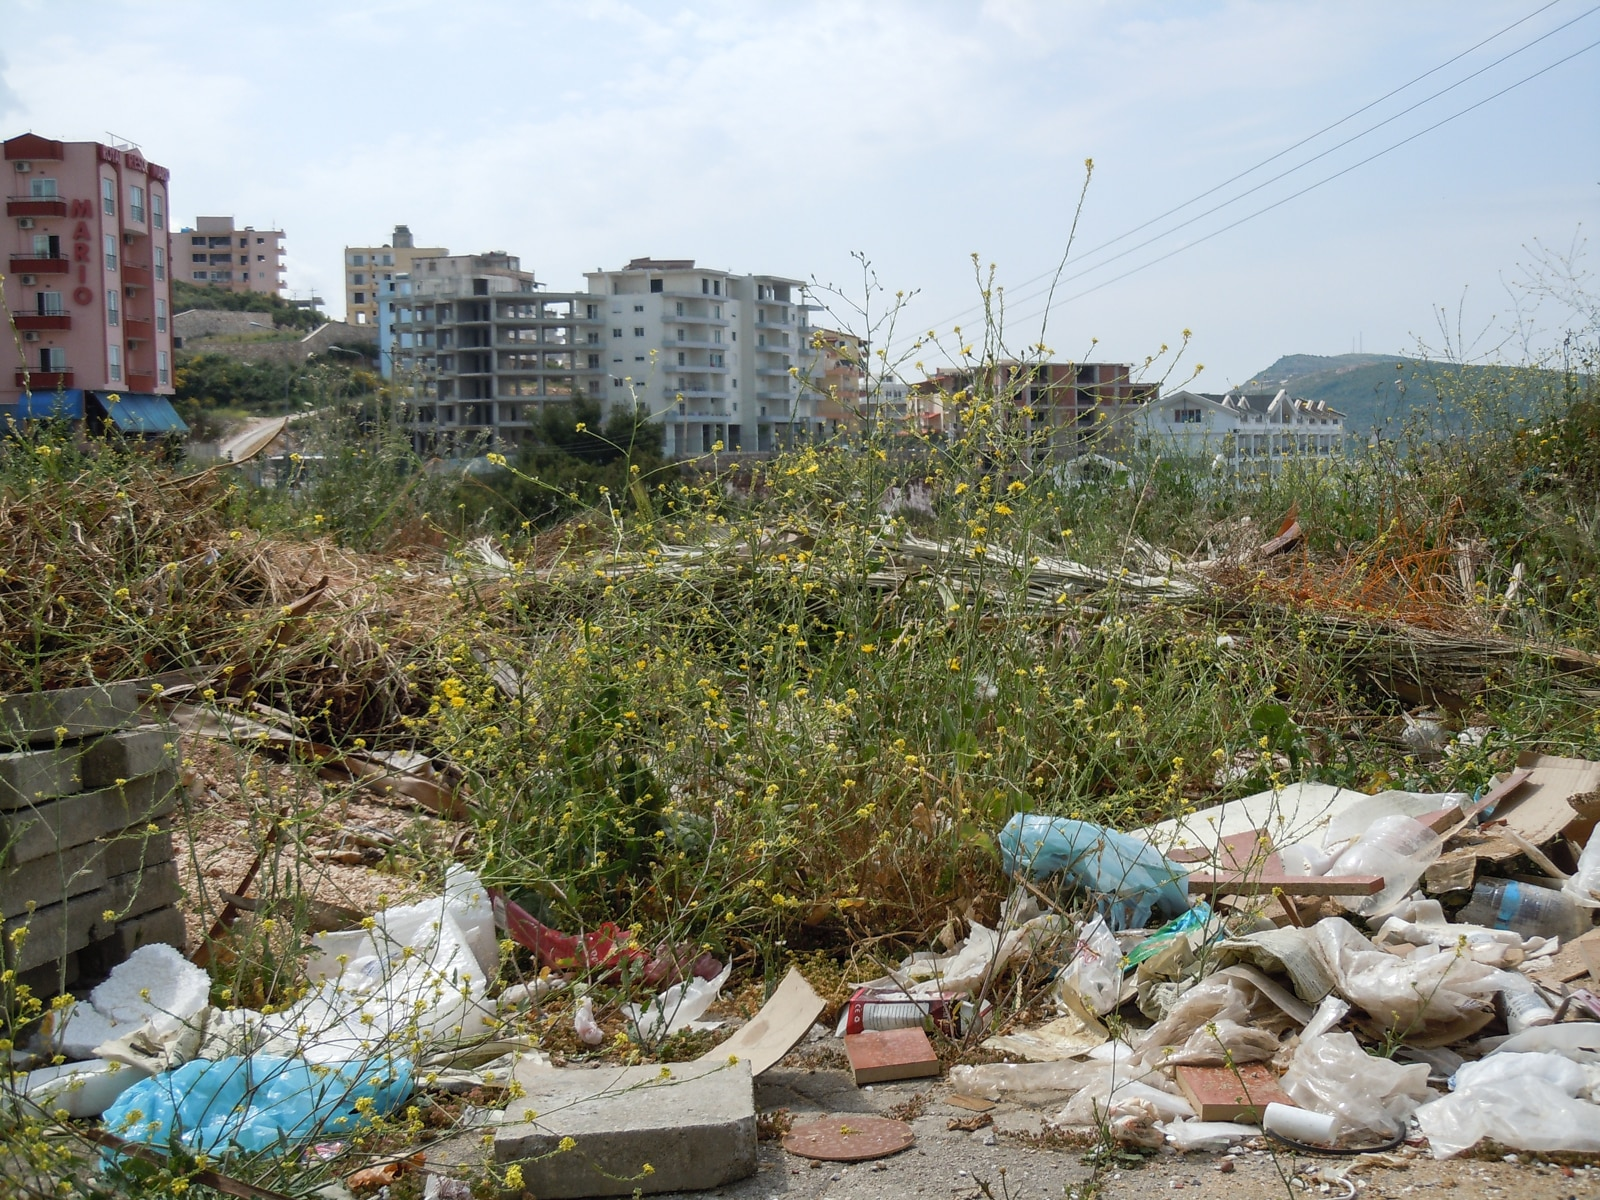 Saranda in the south: piles of rubbish and recently built blocks of flats as far as the eye can see